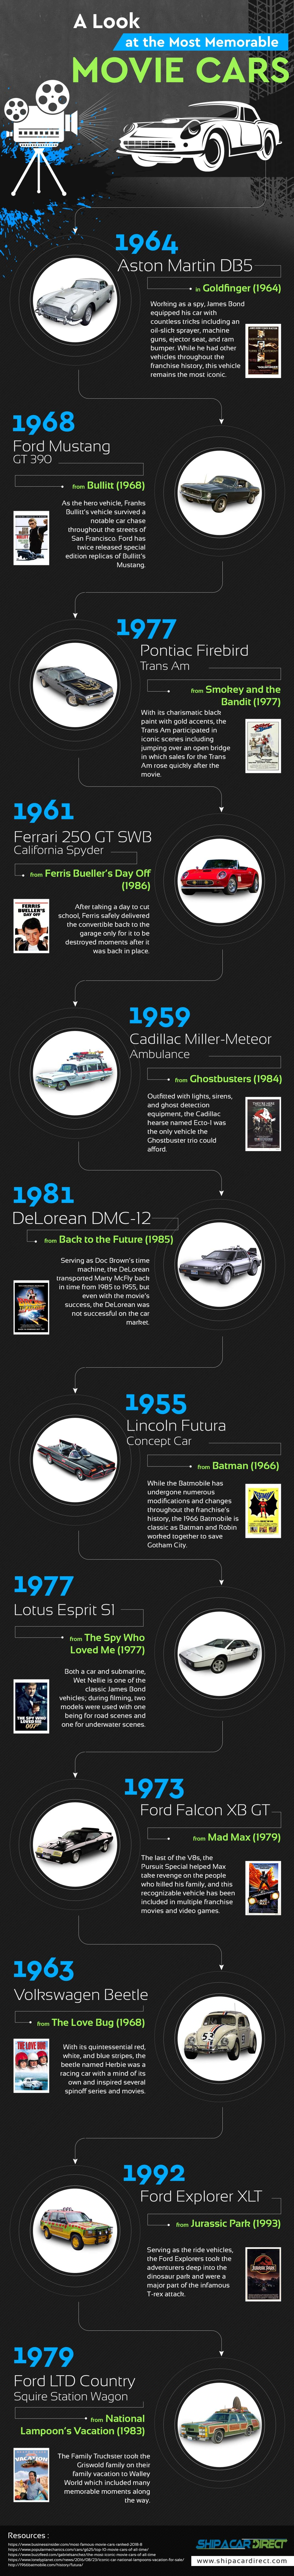 Most Memorable Movie Cars that Make Car-Aficionados Sigh with Envy - Infographic